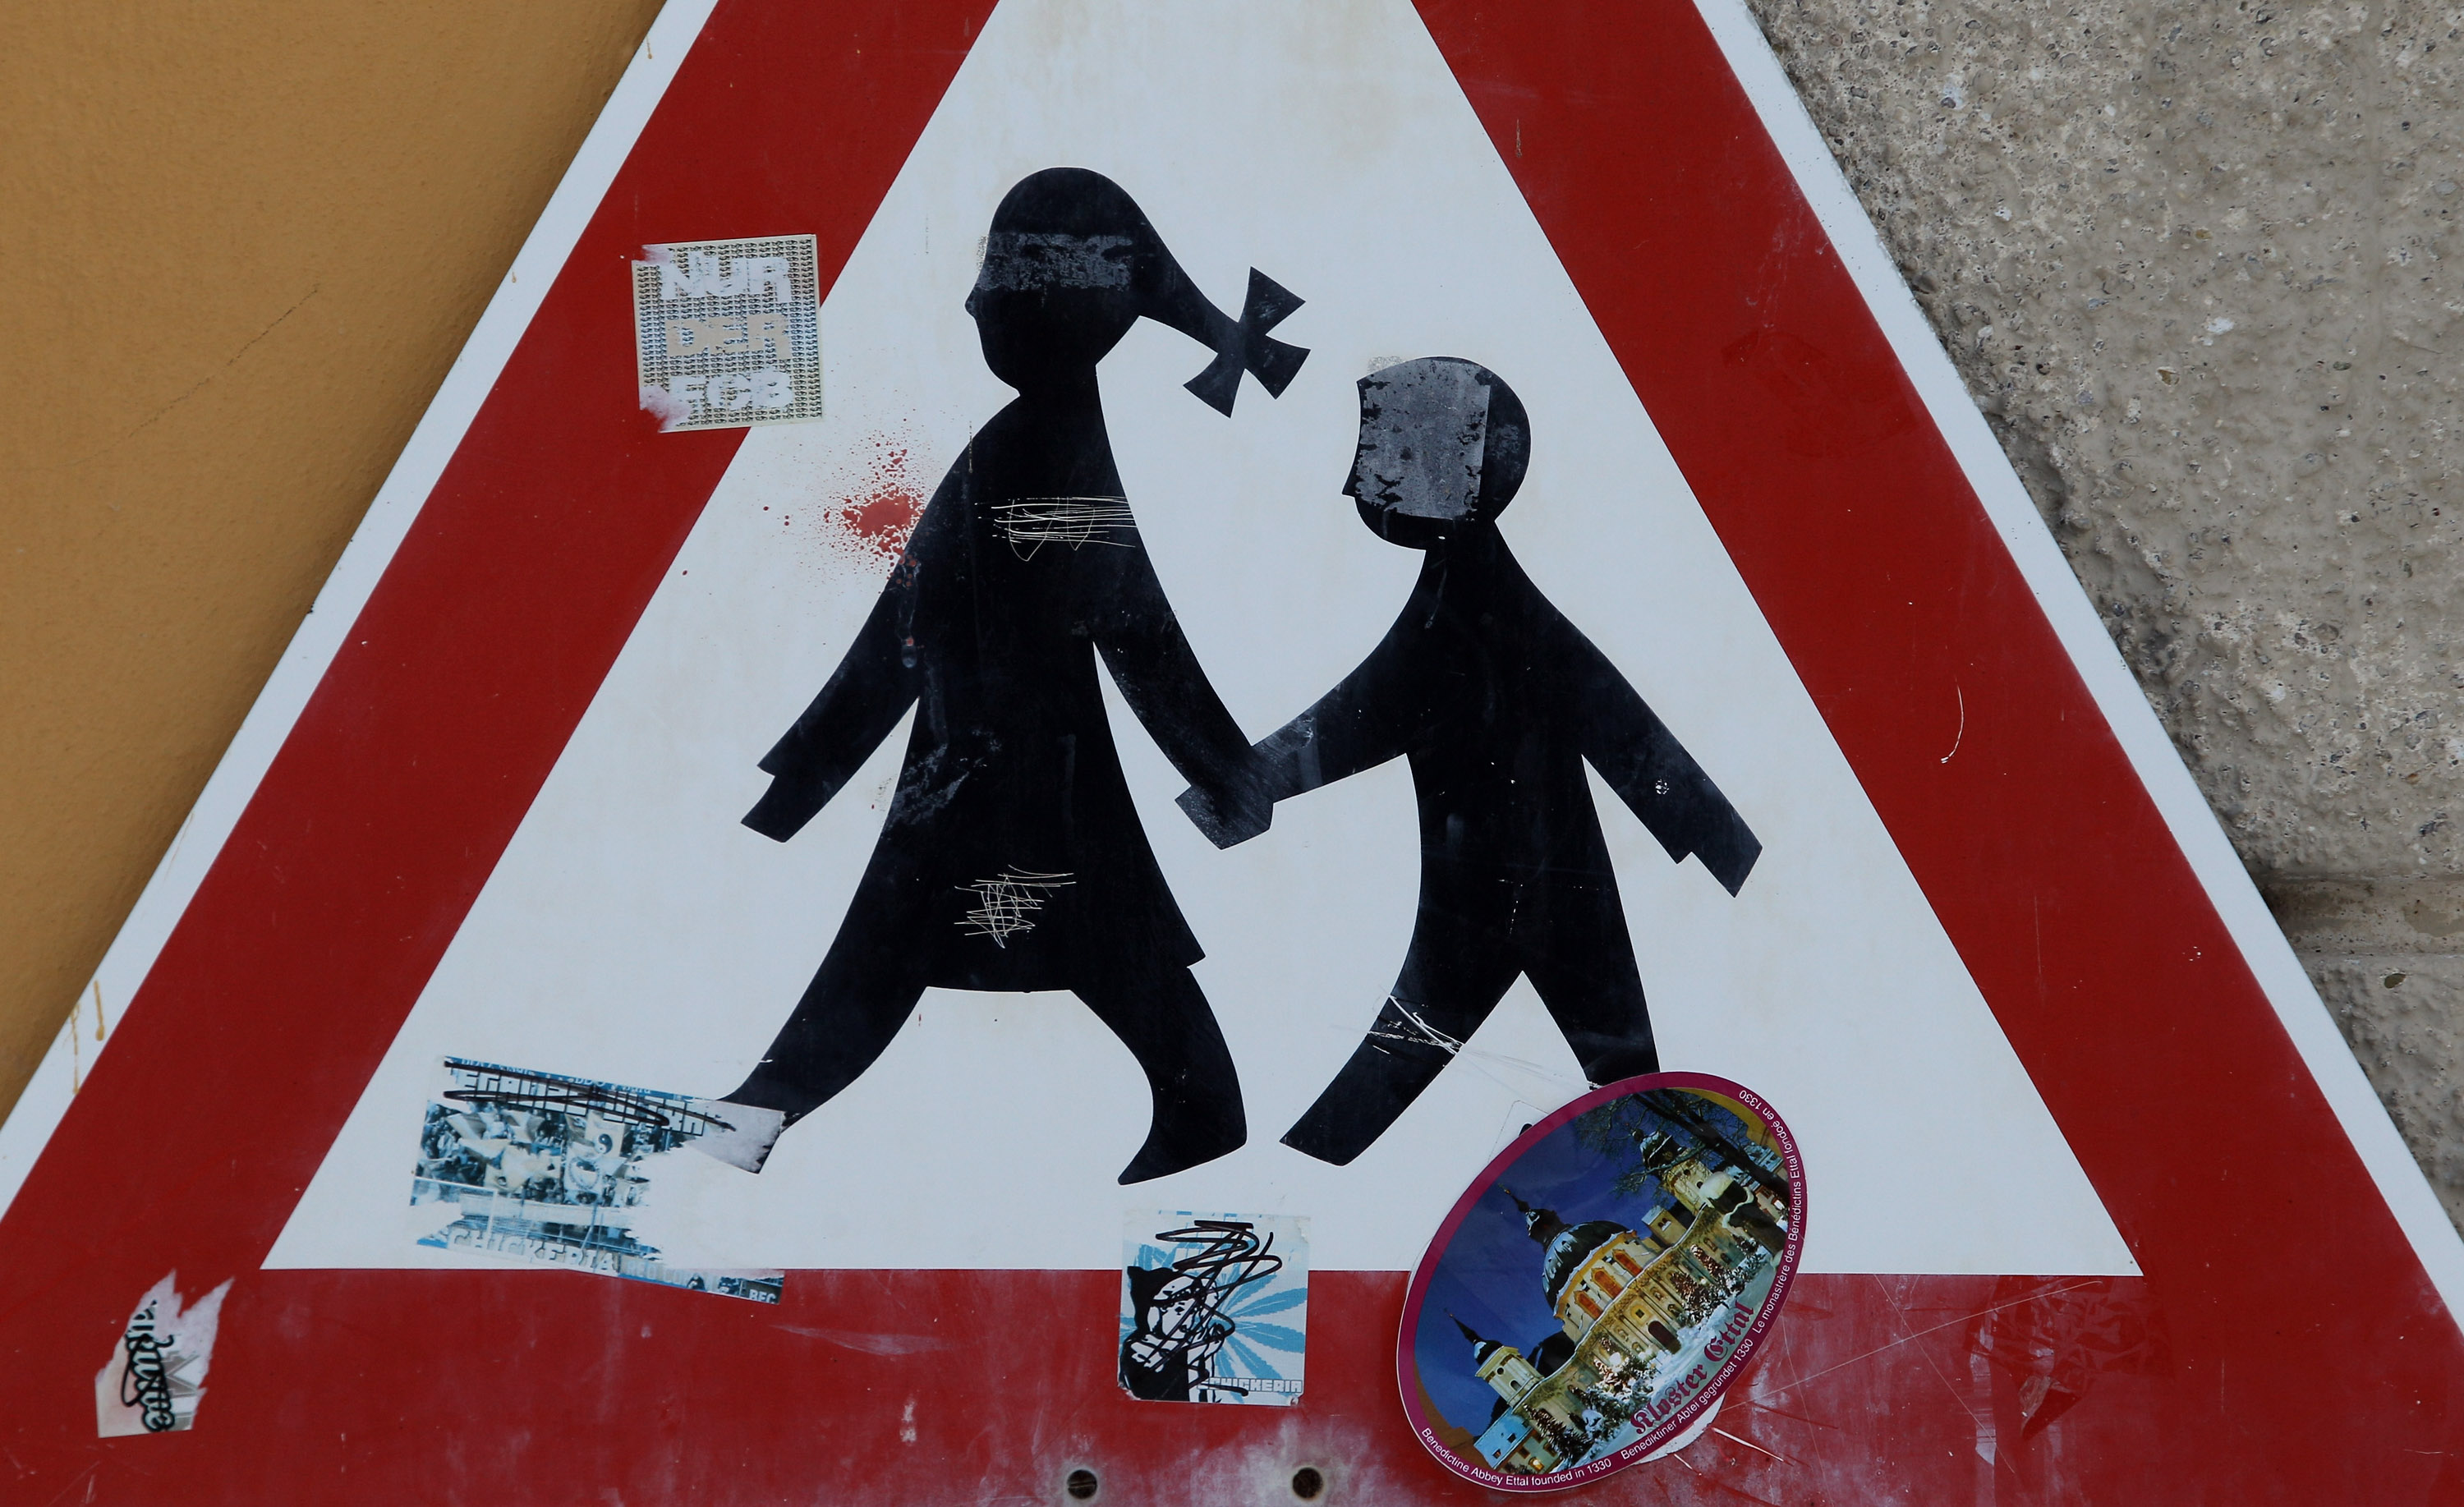 A traffic sign depicting children is pictured at the Benedictine-run Ettal Monastery is pictured on March 12, 2010 in Ettal, Germany. (Getty Images)